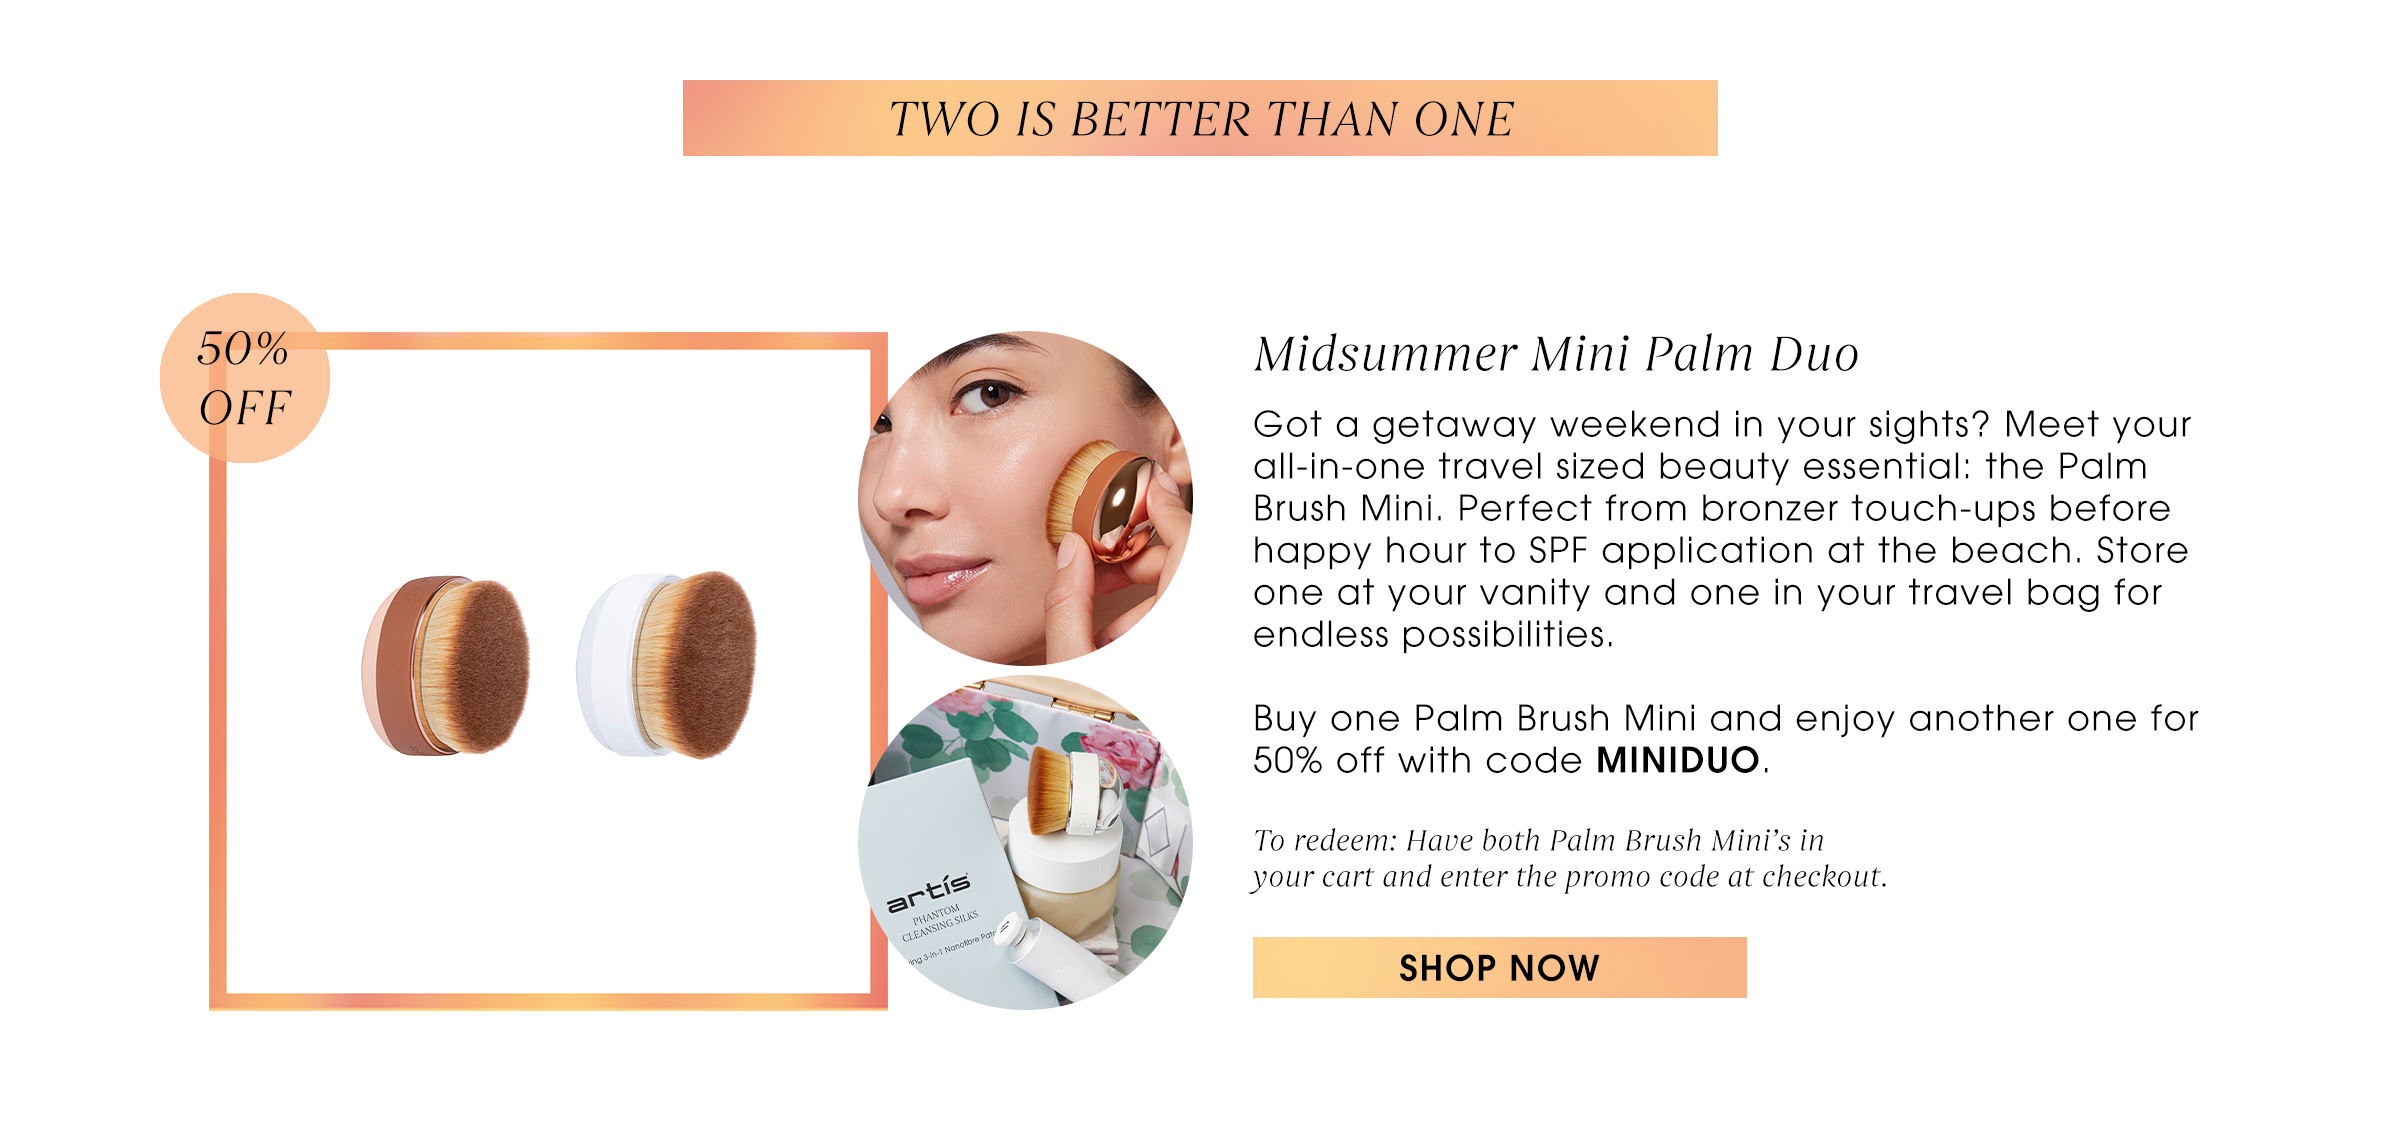 Two is better than one. Midsummer Mini Palm Duo   Got a getaway weekend in your sights? Meet your all-in-one travel sized beauty essential: the Palm Brush Mini. Perfect from bronzer touch-ups before happy hour to SPF application at the beach. Store one at your vanity and one in your travel bag for endless possibilities.  Buy one Palm Brush Mini and enjoy another one for 50% off with code MINIDUO.   To redeem: Have both Palm Brush Mini's in  your cart and enter the promo code at checkout. Shop now.